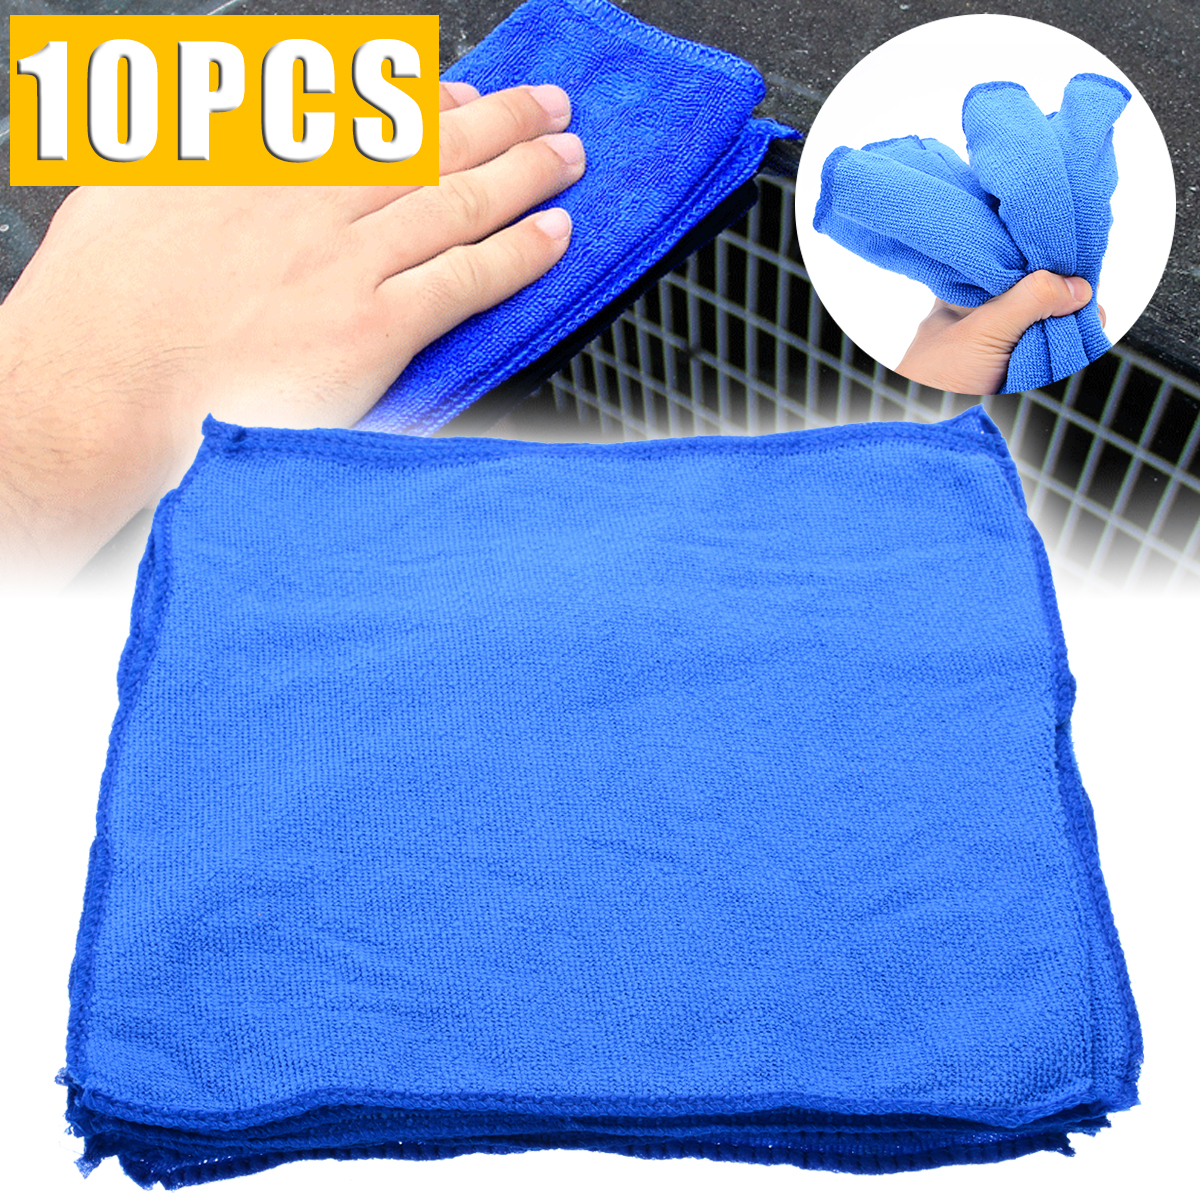 Image 3 - 10pcs Blue Microfiber Cleaning 30*30cm Auto Car Detailing Soft Microfiber Cloths Wash Towel Duster Home Cleaning Tools-in Car Washer from Automobiles & Motorcycles